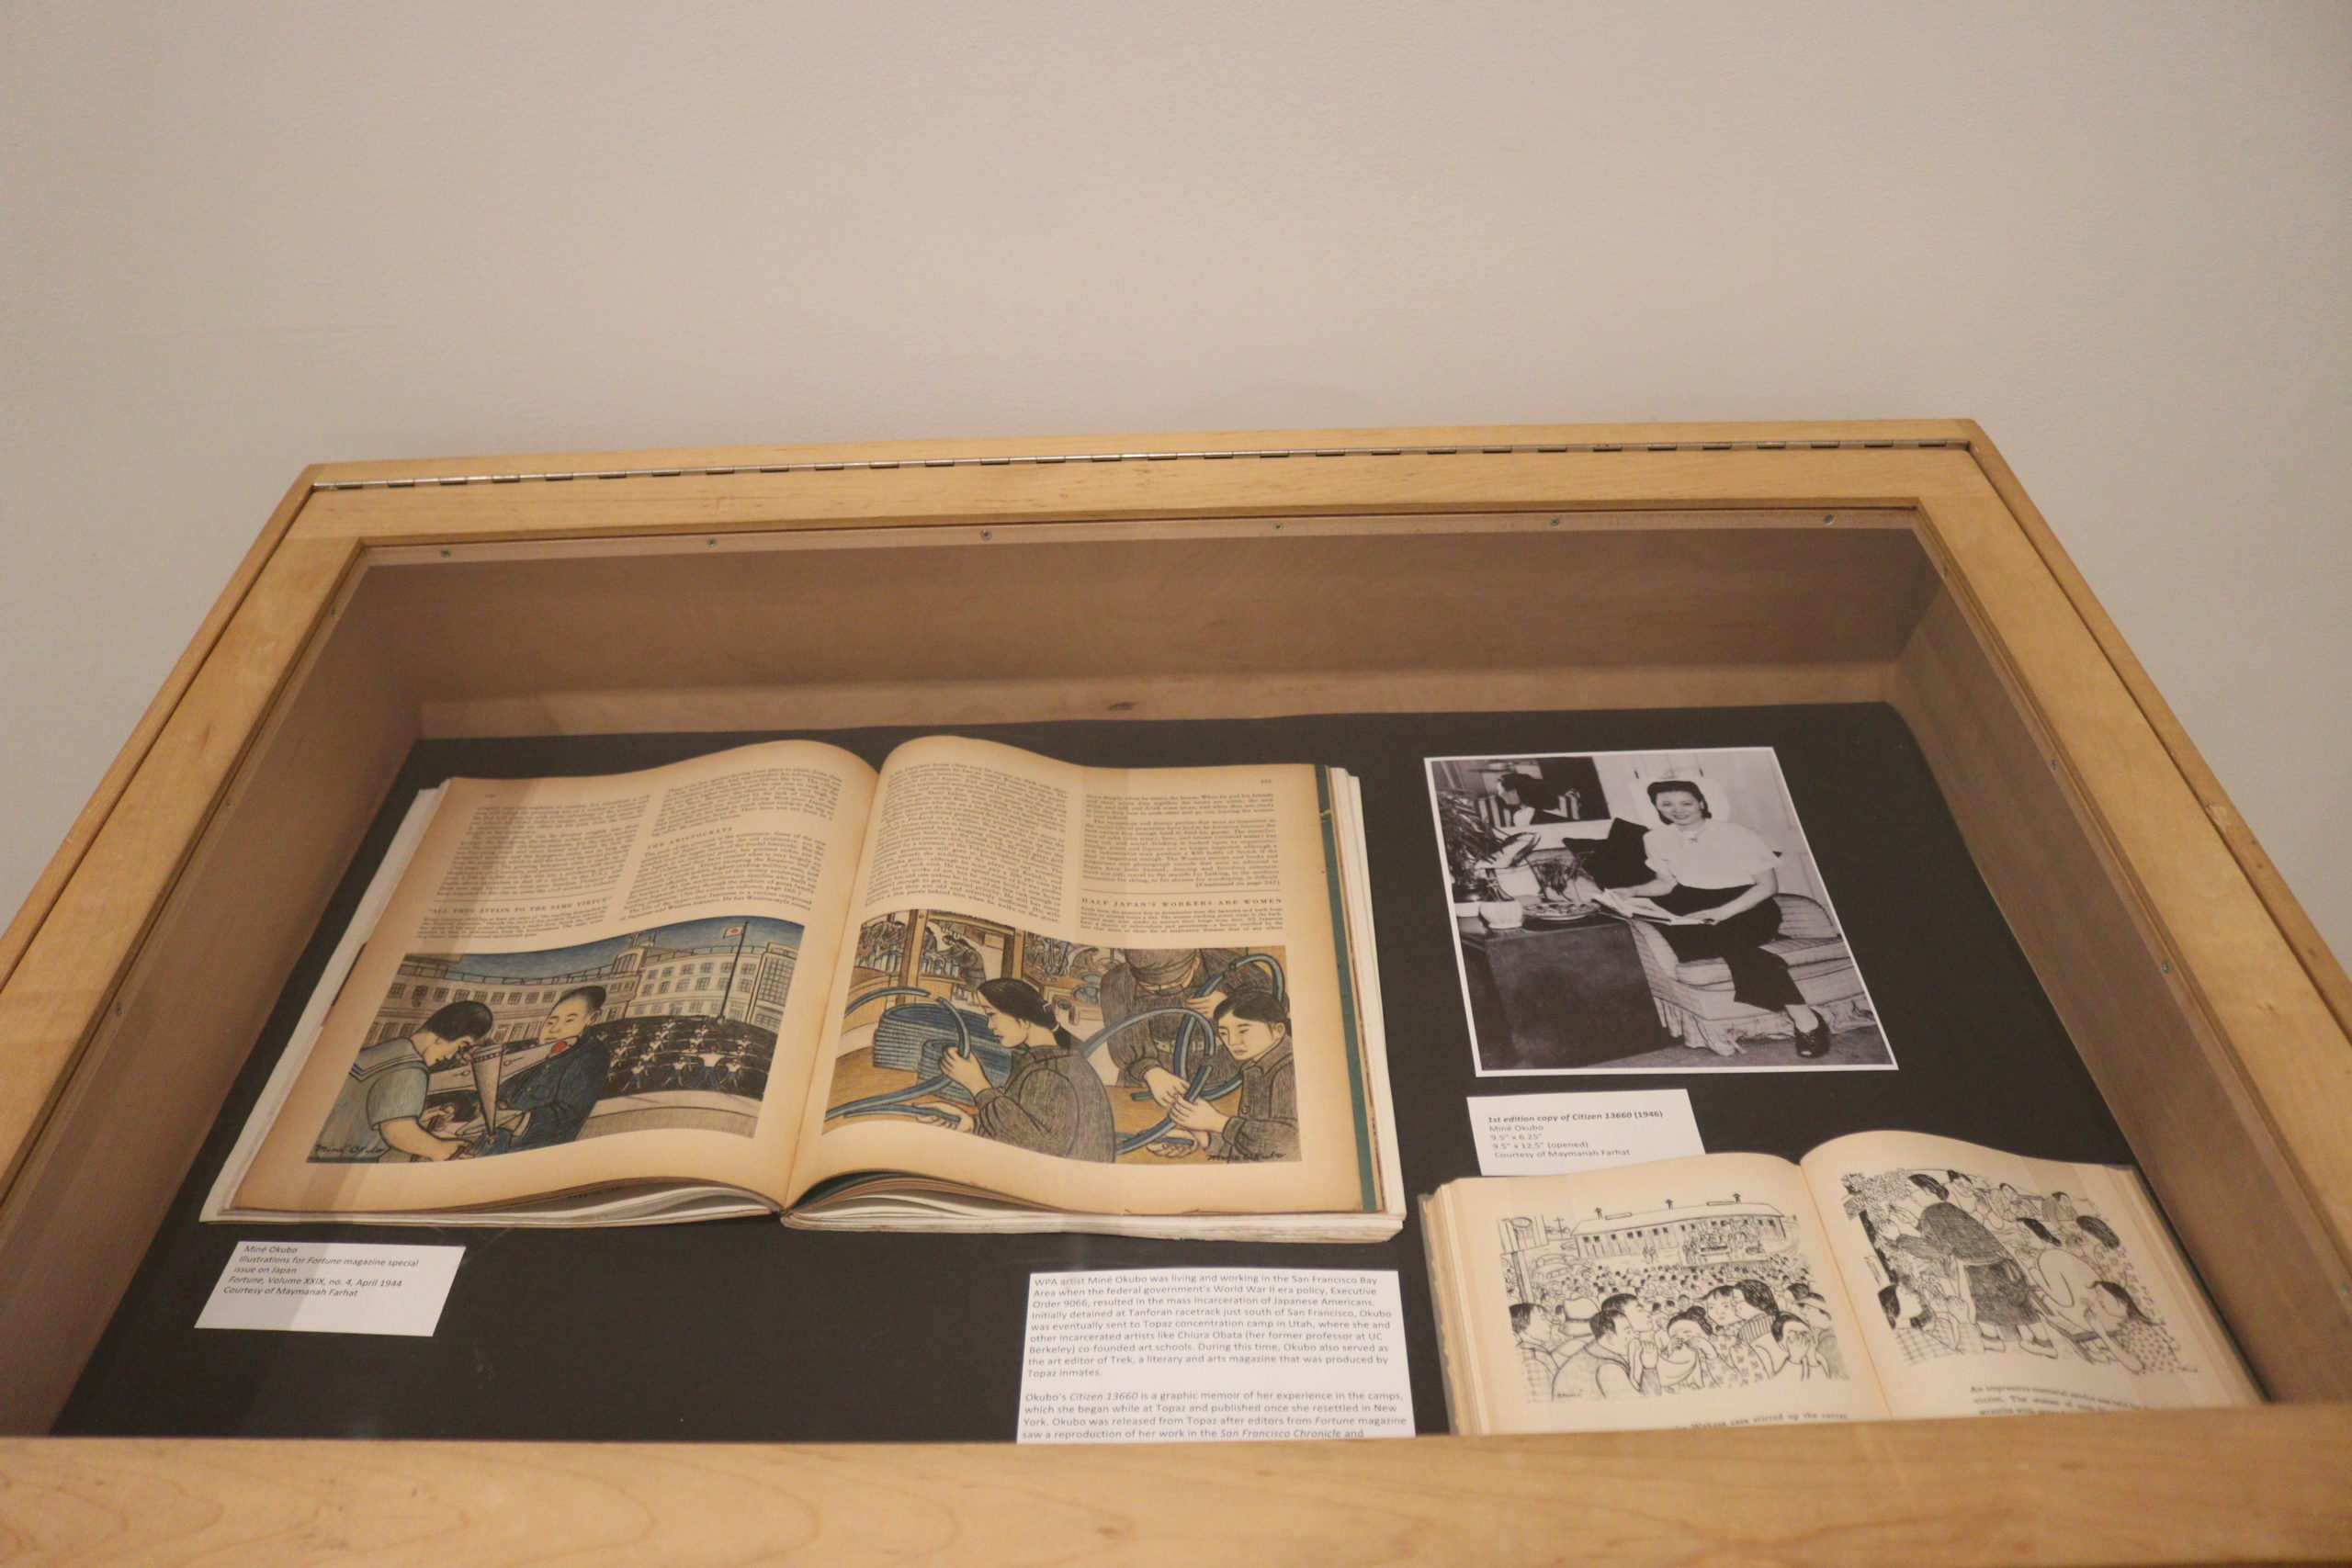 flat display case containing books and documents about the work of Mina Okubo